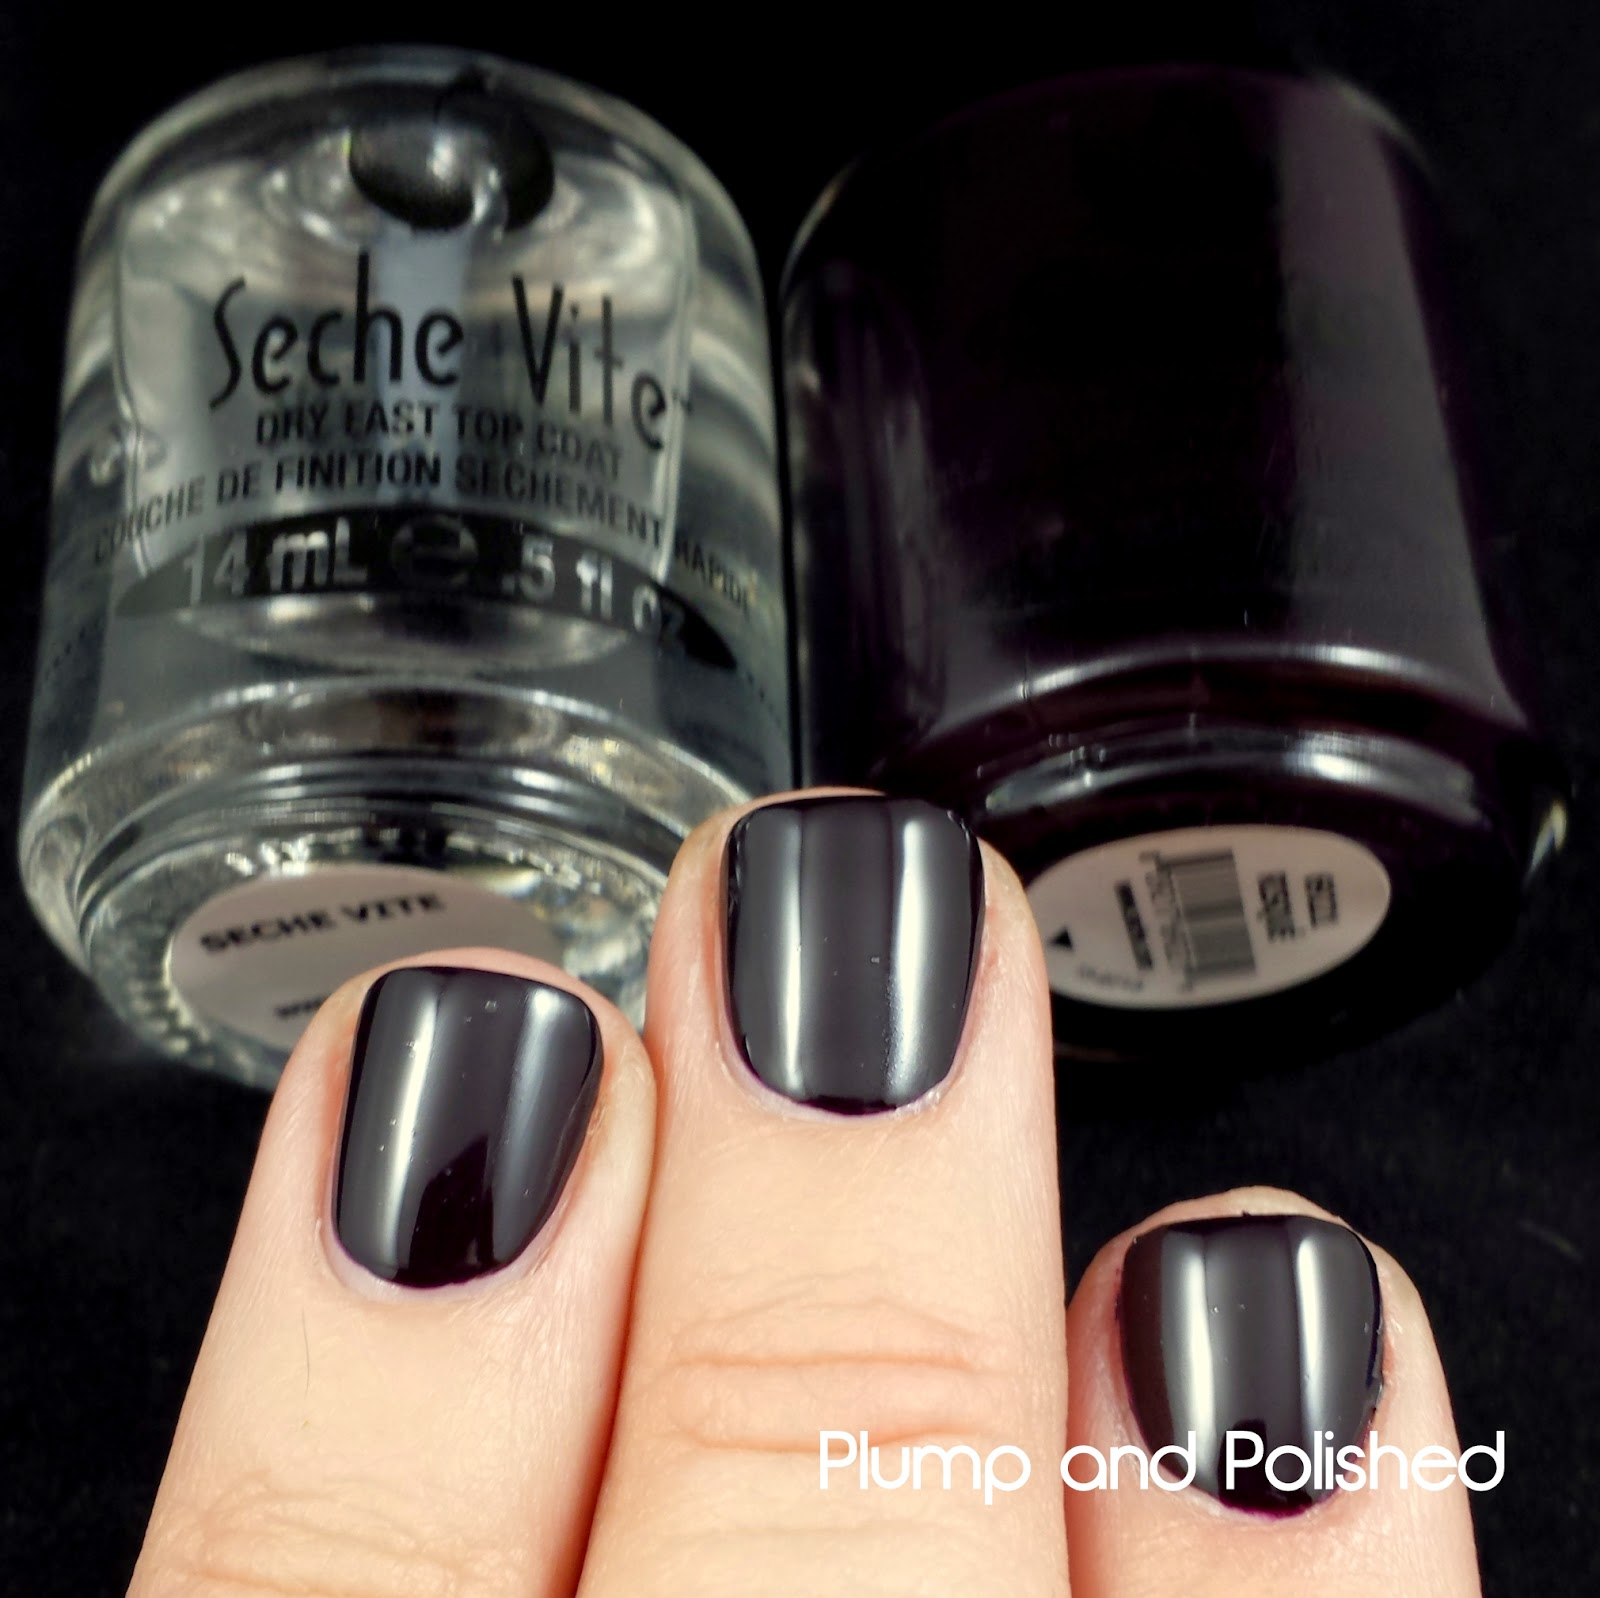 Live Love Polish: Seche Risque & Seche Vite